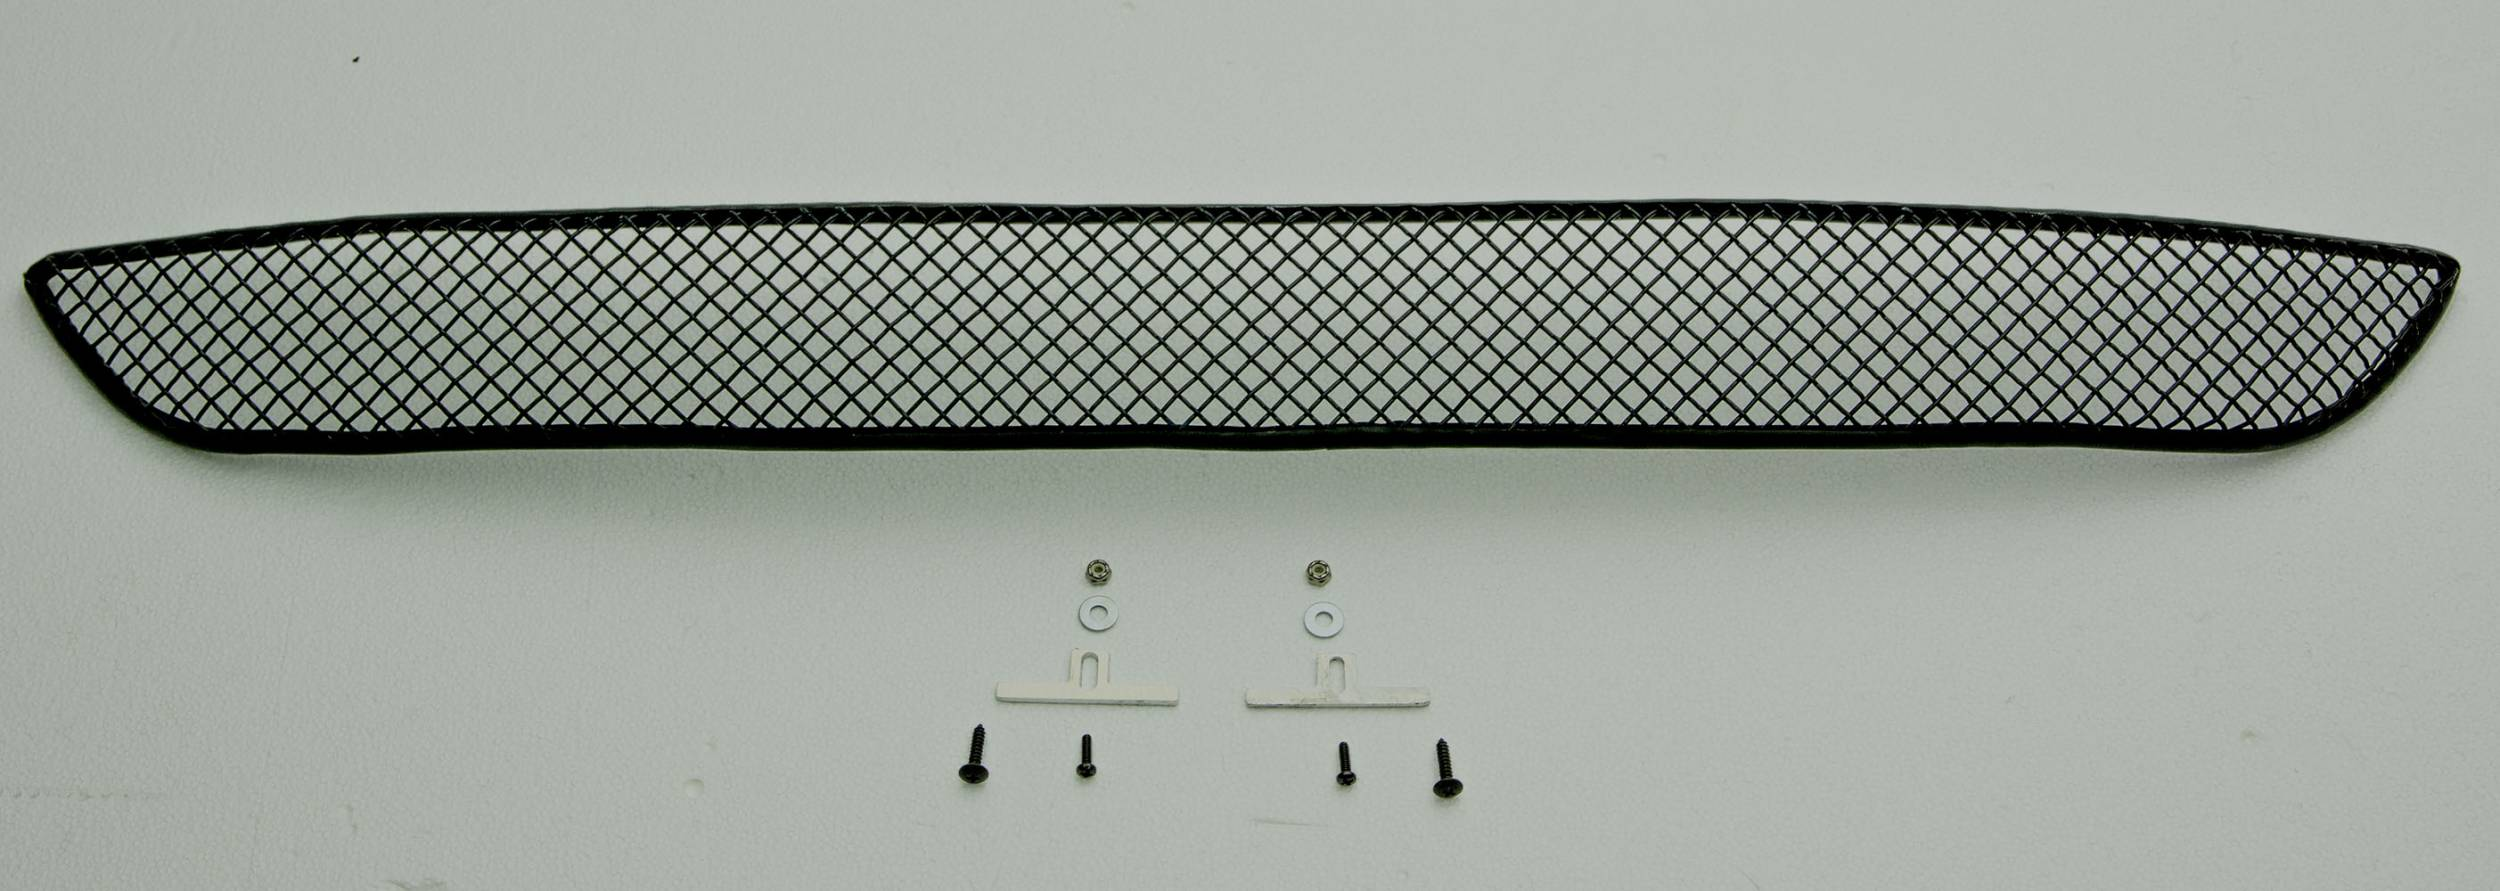 T-REX Grilles - 2011-2013 Chrysler 300, Sport Series, Formed Mesh Bumper Grille, Overlay, 1 Pc, Black for Australian Model - PN# 47435